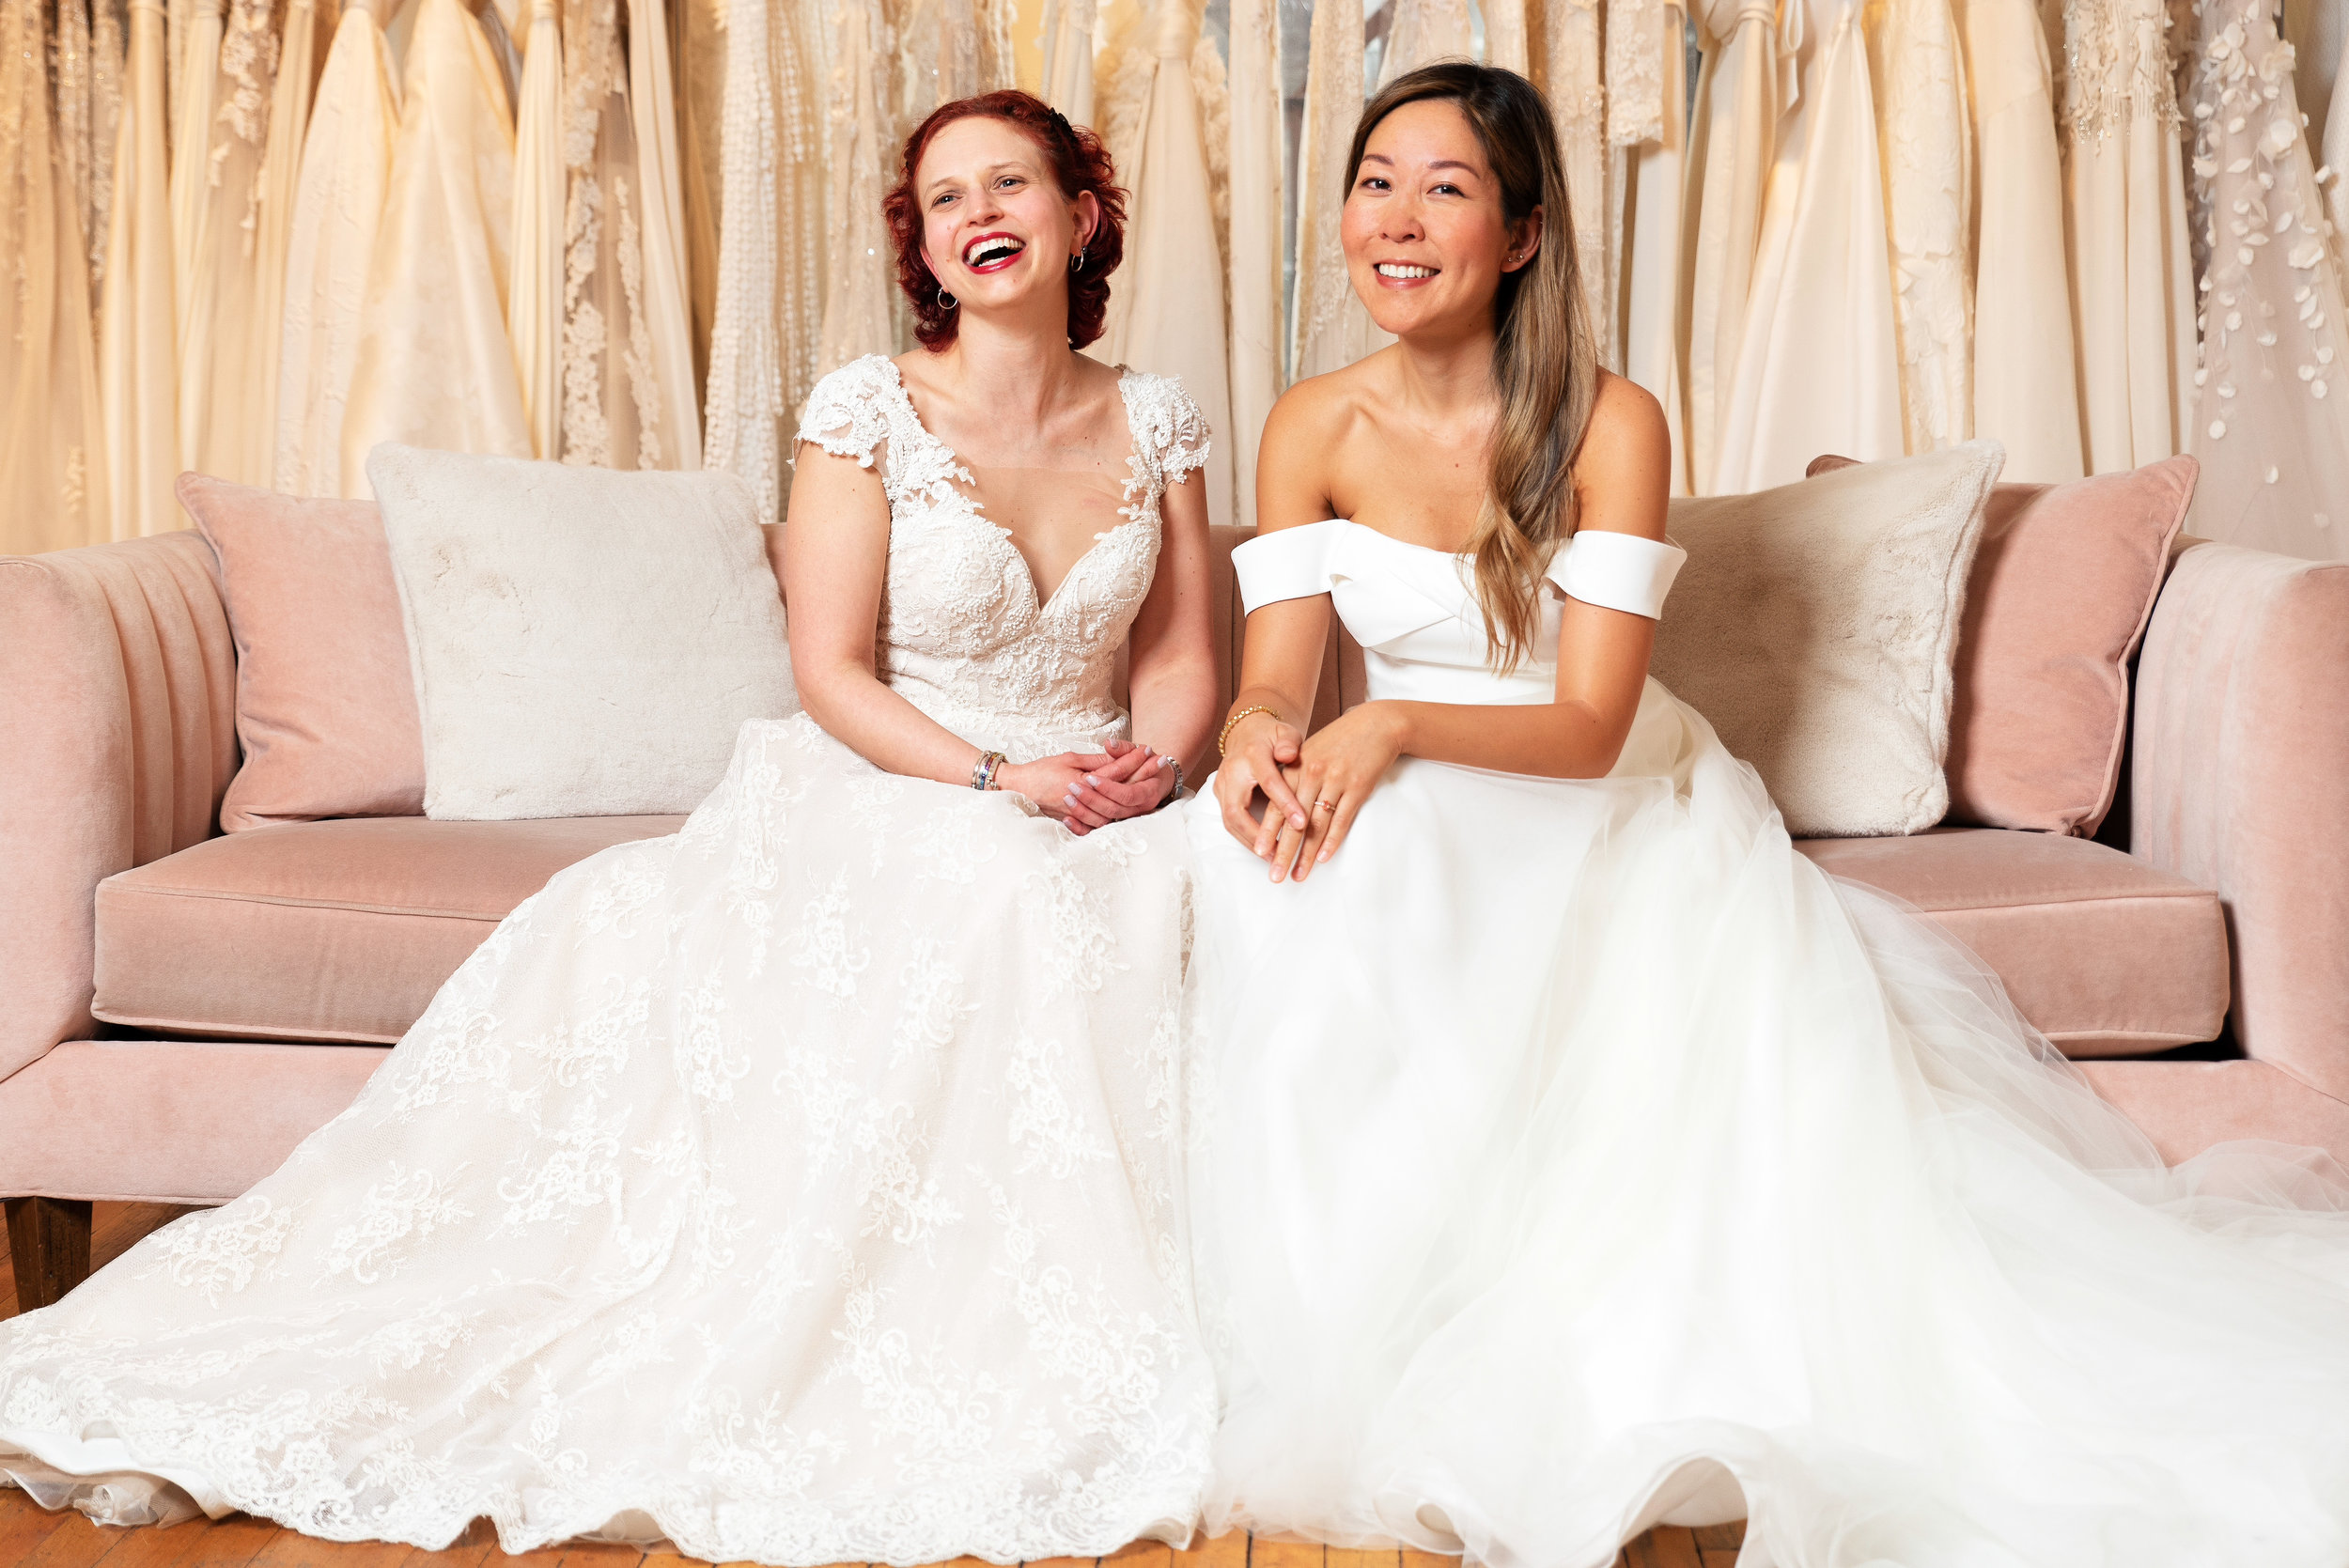 Young Survival Coalition partnered with wedding designer Kelly Faetanini and Gabriella New York Bridal Salon to donate wedding dresses to two breast cancer survivors for their upcoming weddings.